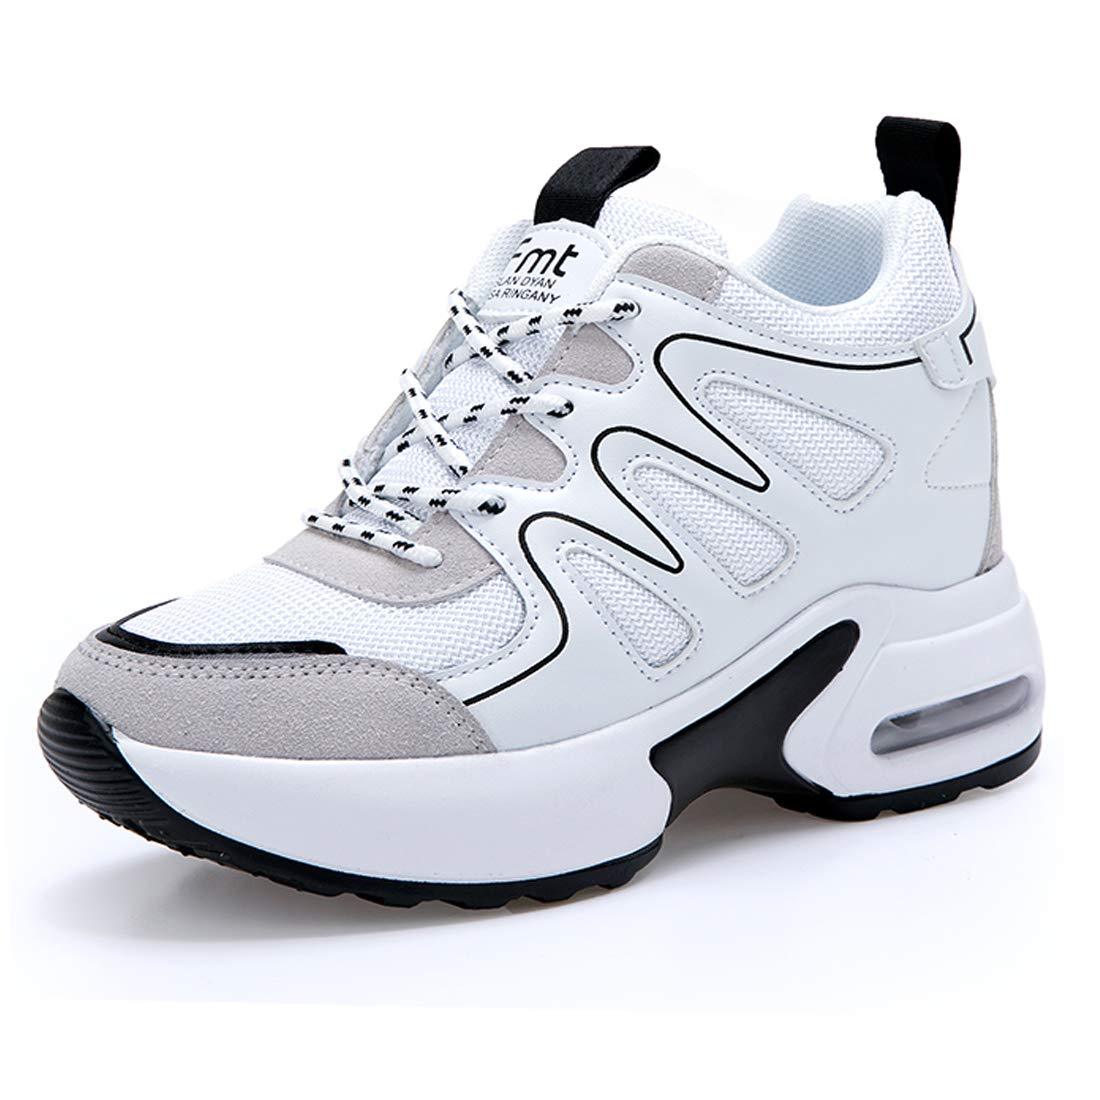 05-white TQgold Women's Platform Sneakers Wedges High Top Lace Up shoes Increase Fashion Sneakers for Women Girls